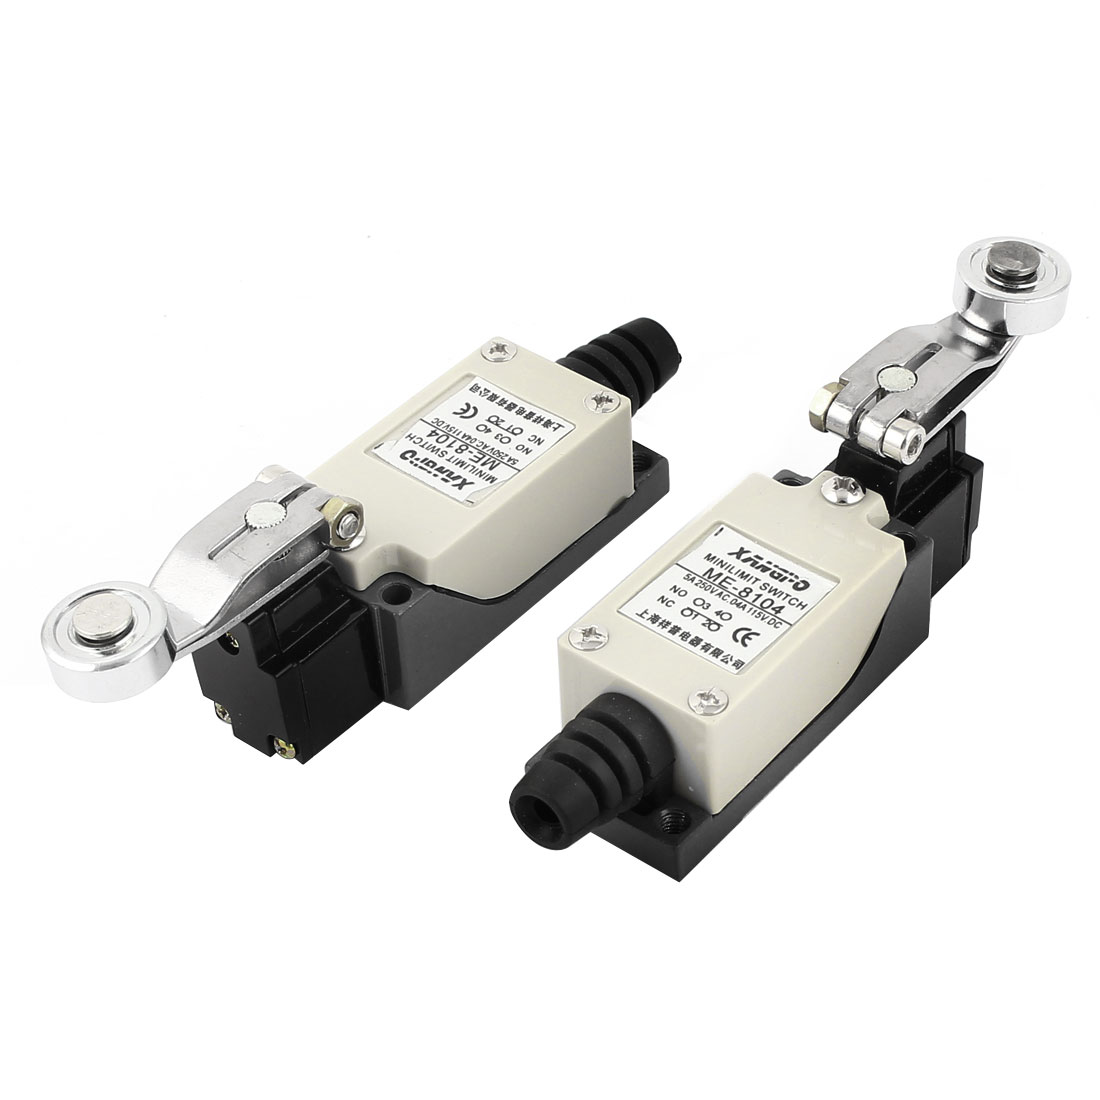 ME-8104 DC 115V 0.4A AC 250V 5A NO NC Momentary Rotary Roller Limit Switch 2 Pcs